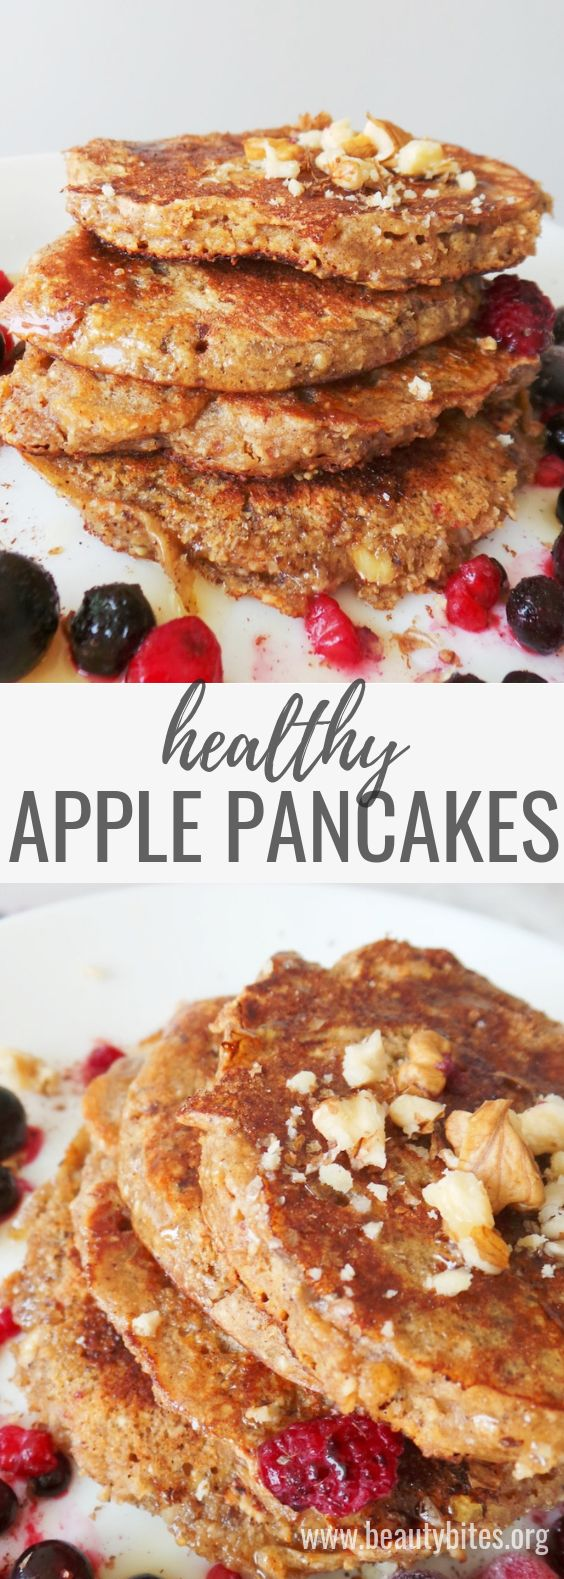 APPLE PANCAKES WITH OATS – HEALTHY & EASY BREAKFAST RECIPE #recipes #healthybreakfast #breakfastrecipes #healthybreakfastrecipes #food #foodporn #healthy #yummy #instafood #foodie #delicious #dinner #breakfast #dessert #lunch #vegan #cake #eatclean #homemade #diet #healthyfood #cleaneating #foodstagram